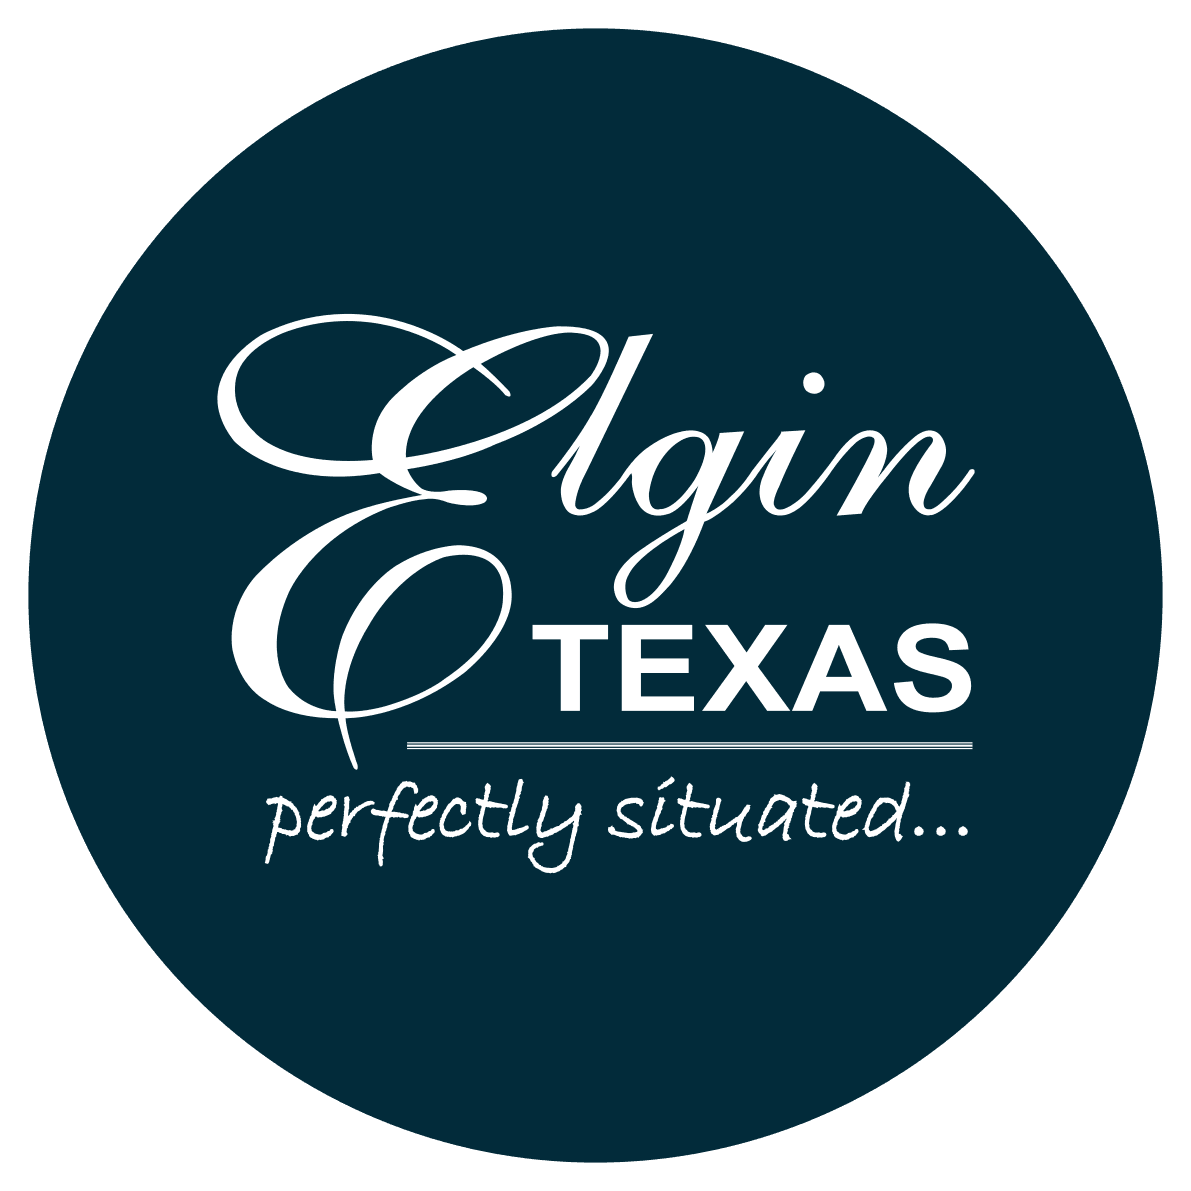 City of Elgin logo - Blue